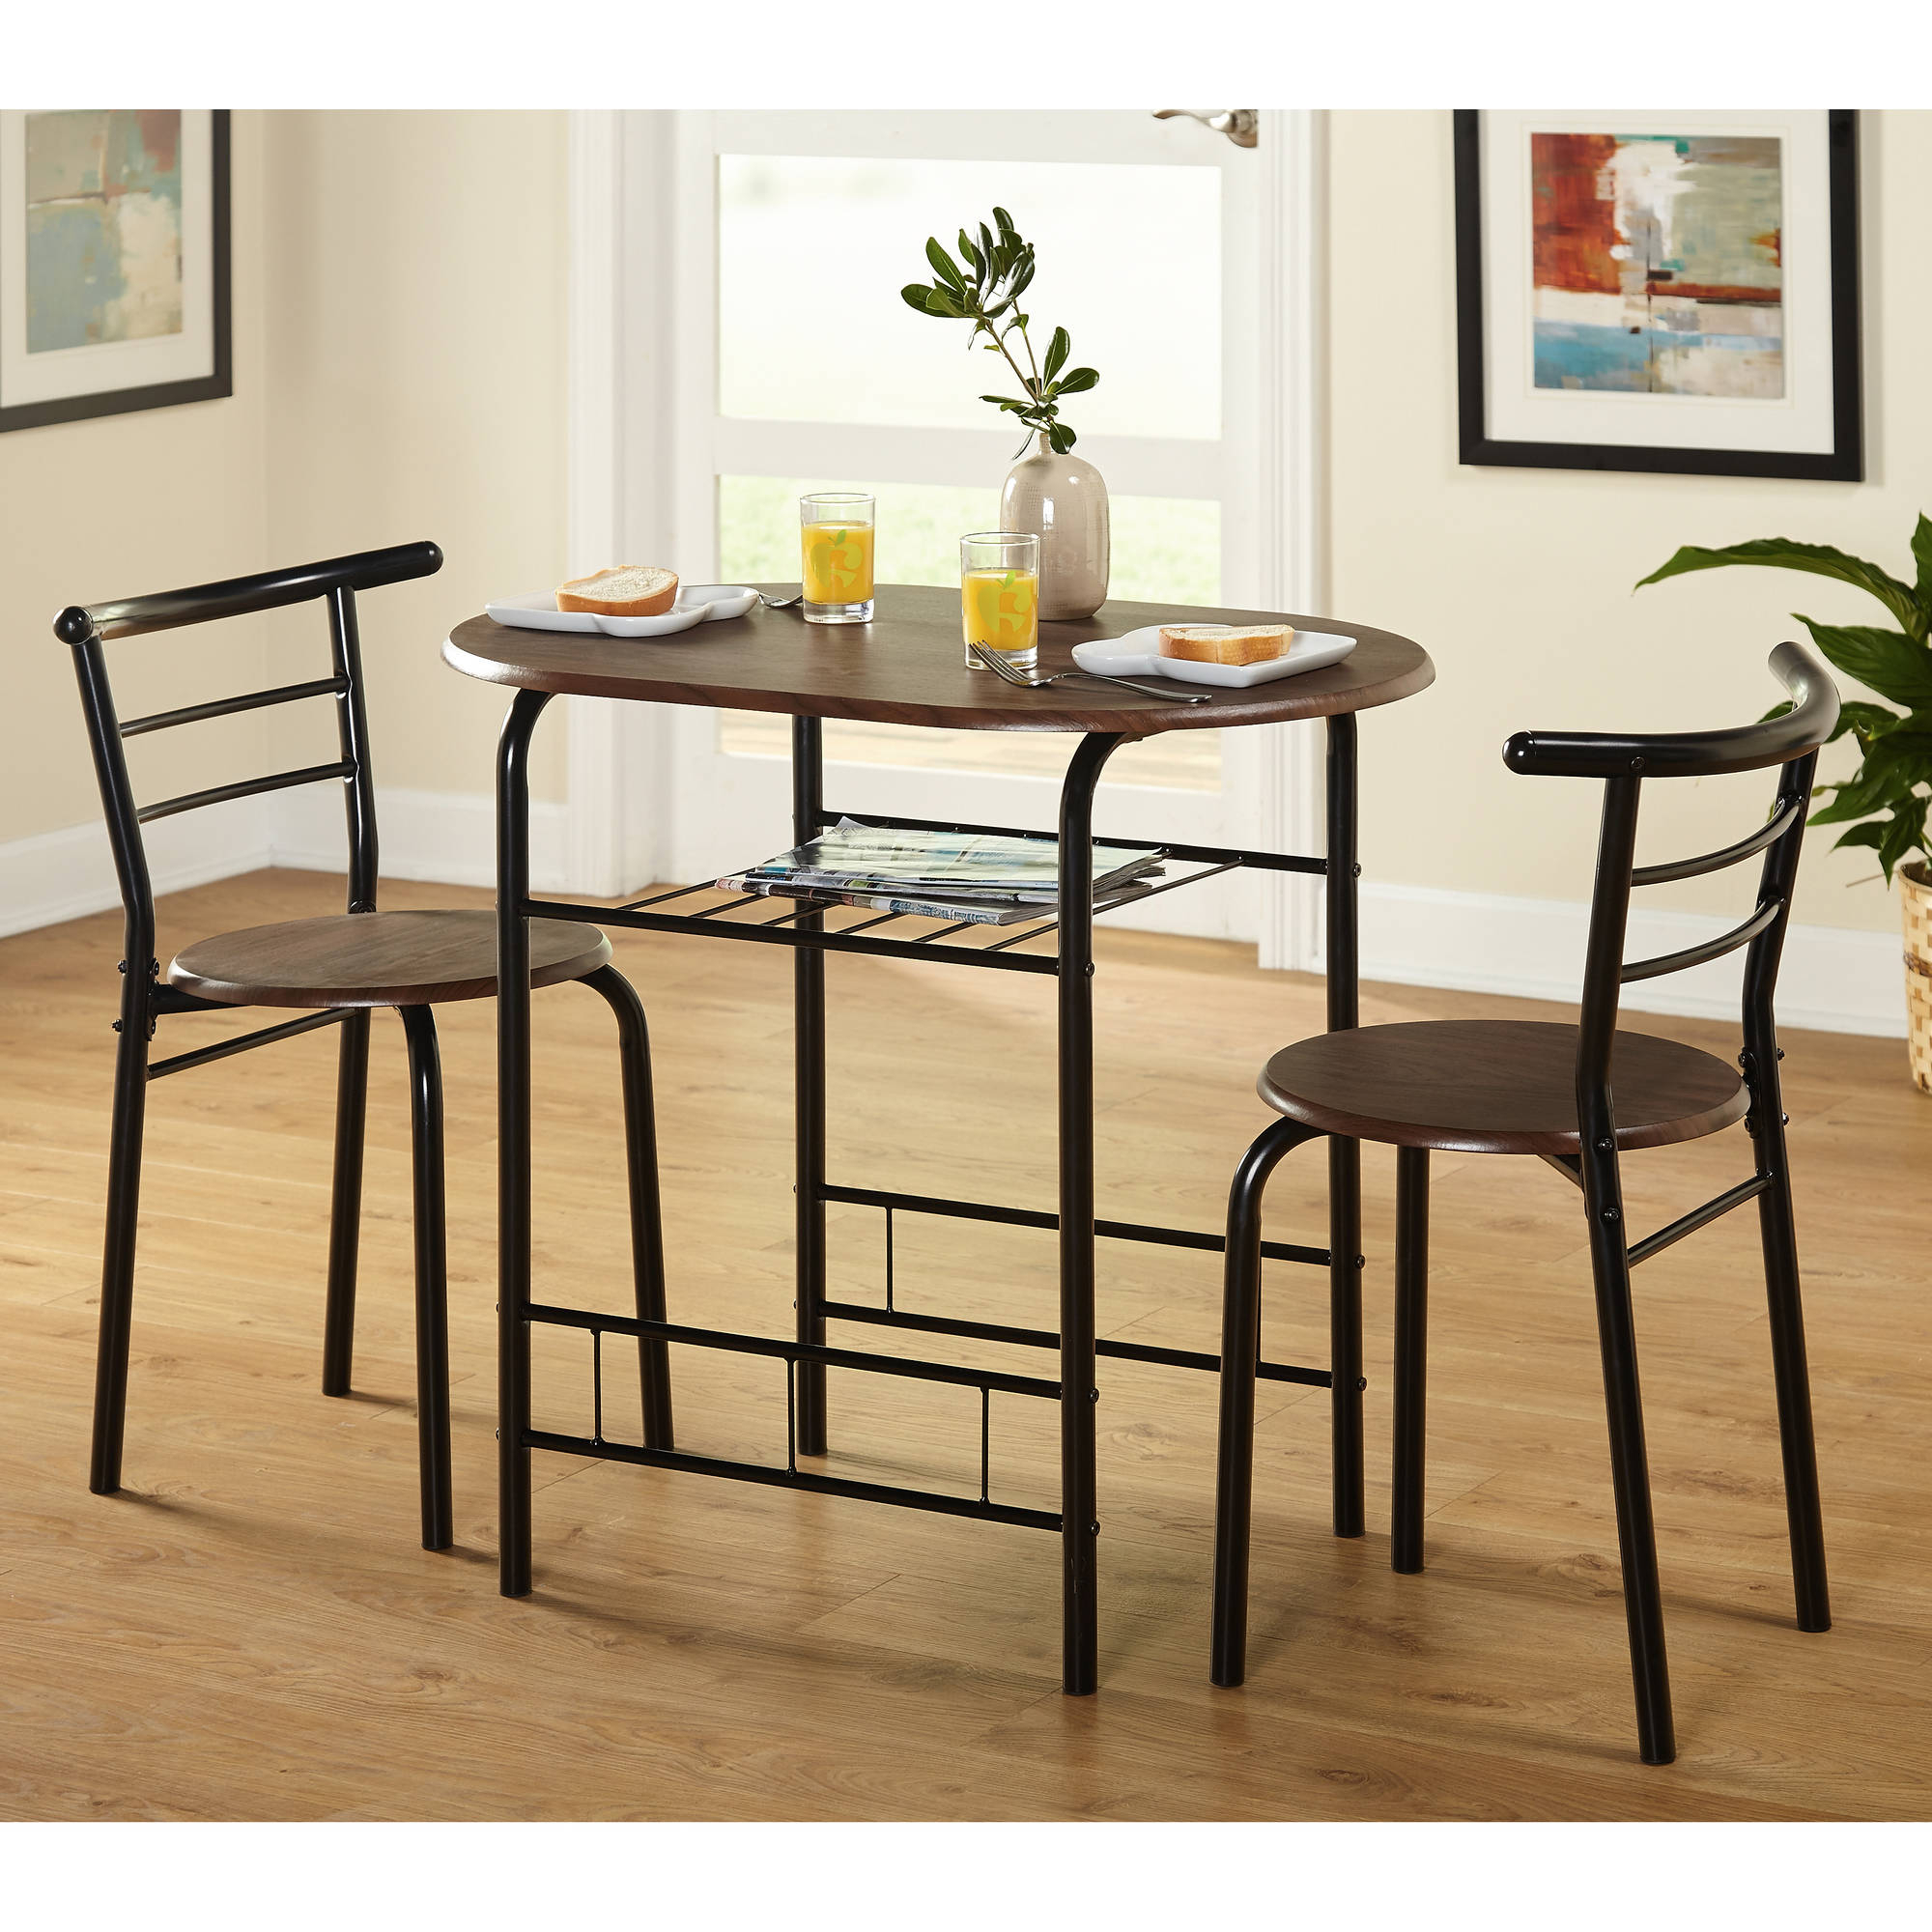 5 Piece Breakfast Nook Dining Sets For Widely Used Tms 3 Piece Bistro Dining Set (View 3 of 20)